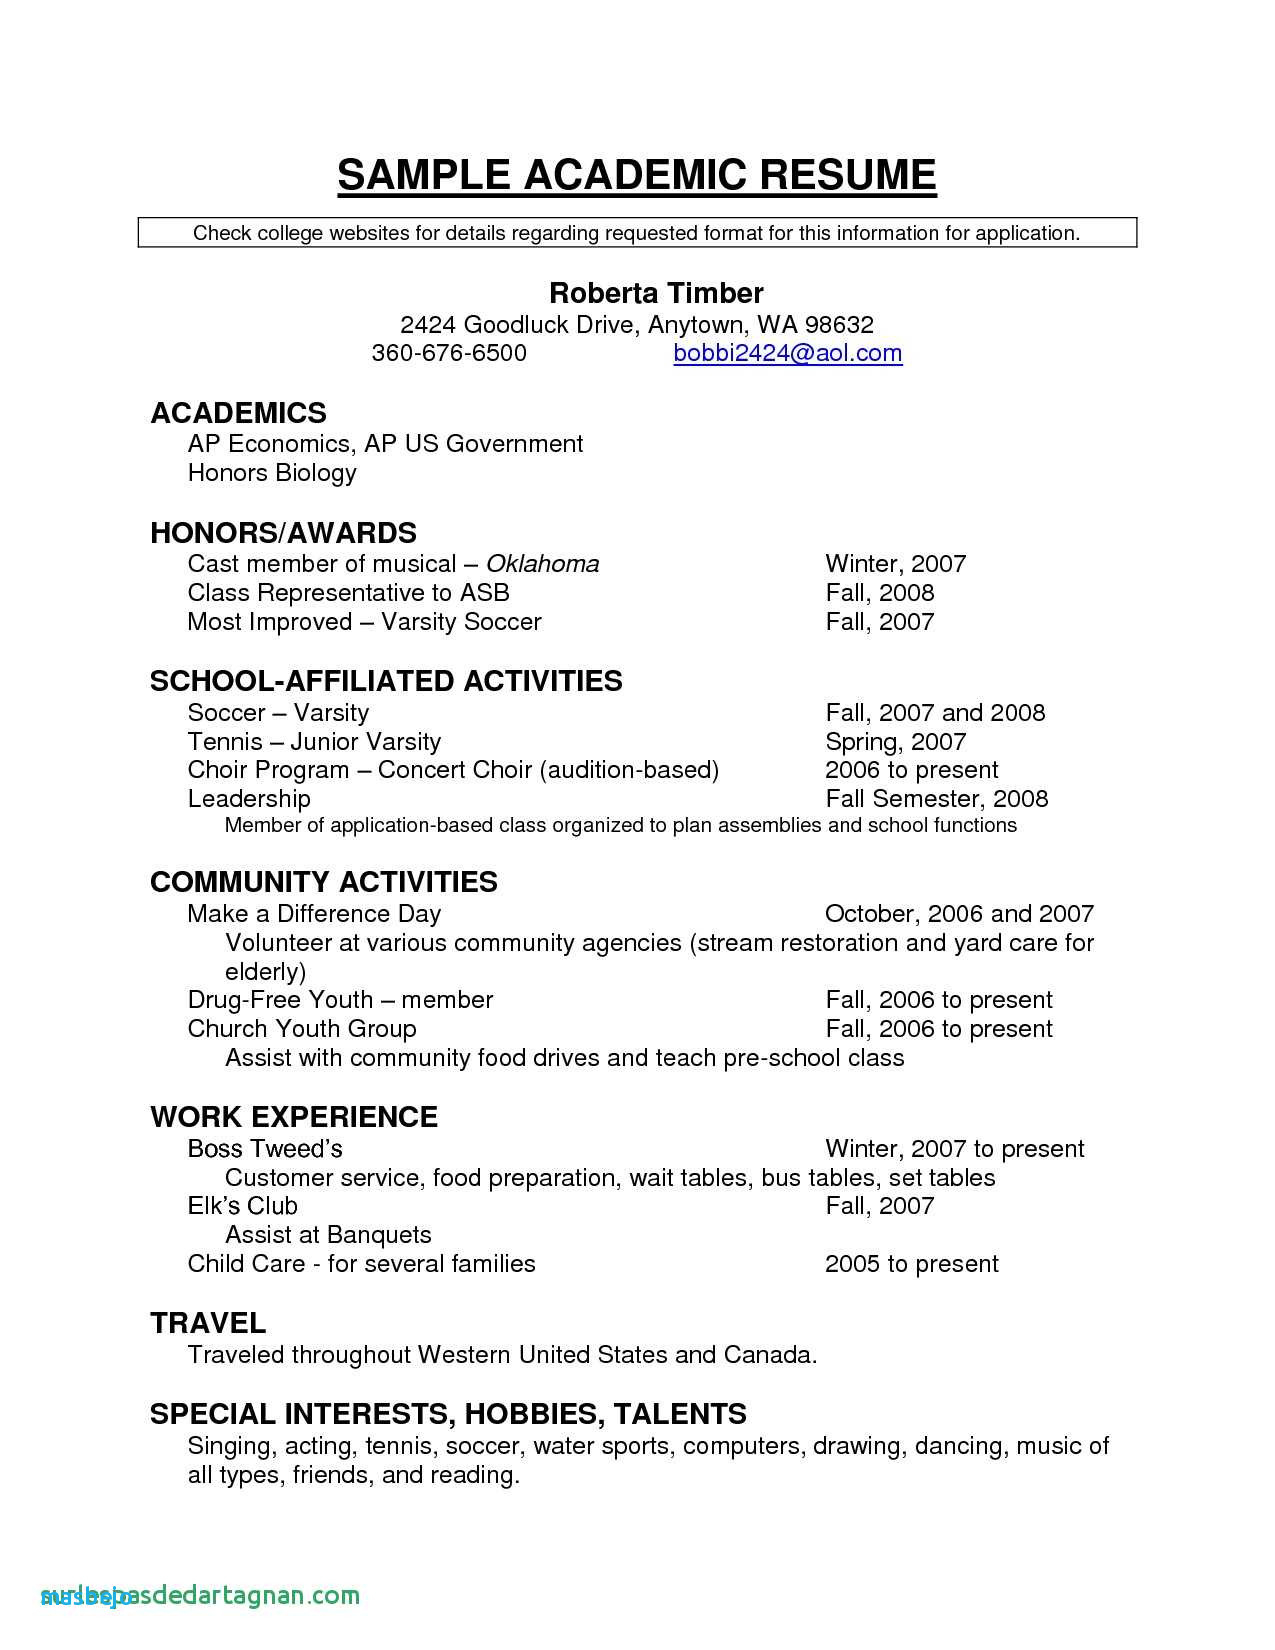 Examples Of High School Resumes - Puter Resume Examples Unique Resume for Highschool Students